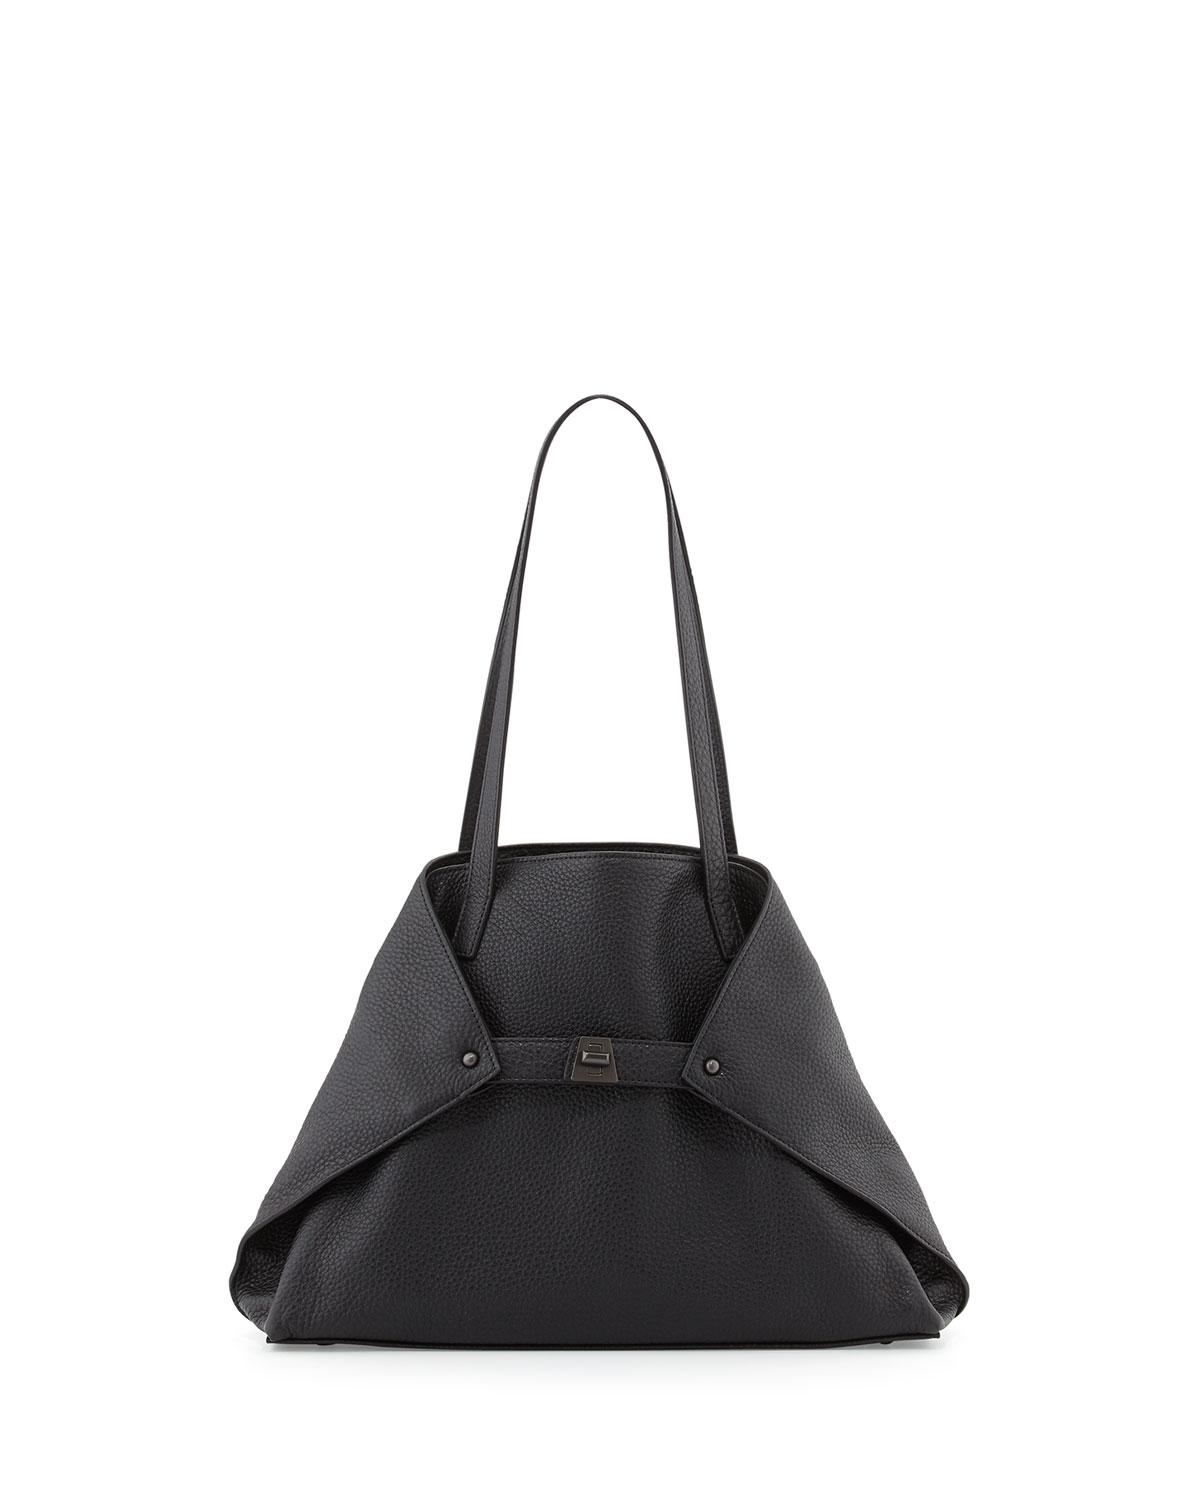 31614ff85c43 Lyst - Akris Ai Small Leather Shoulder Tote Bag in Black - Save 2%